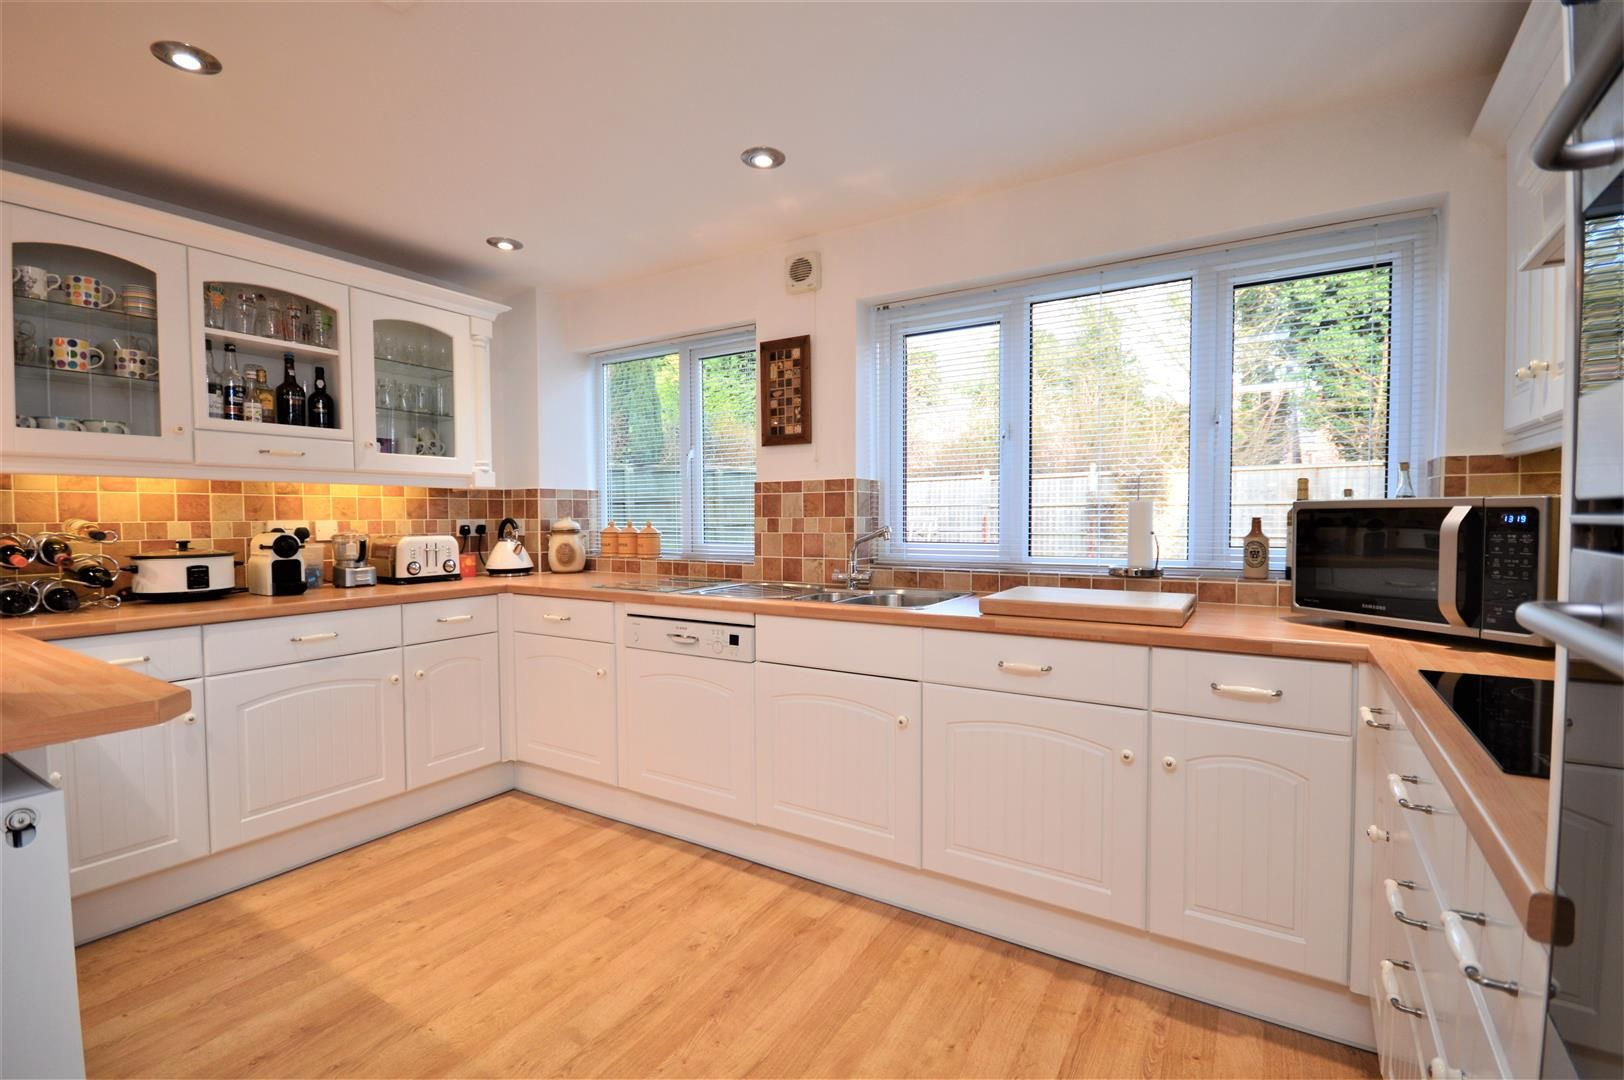 4 bed detached for sale in Hereford  - Property Image 7